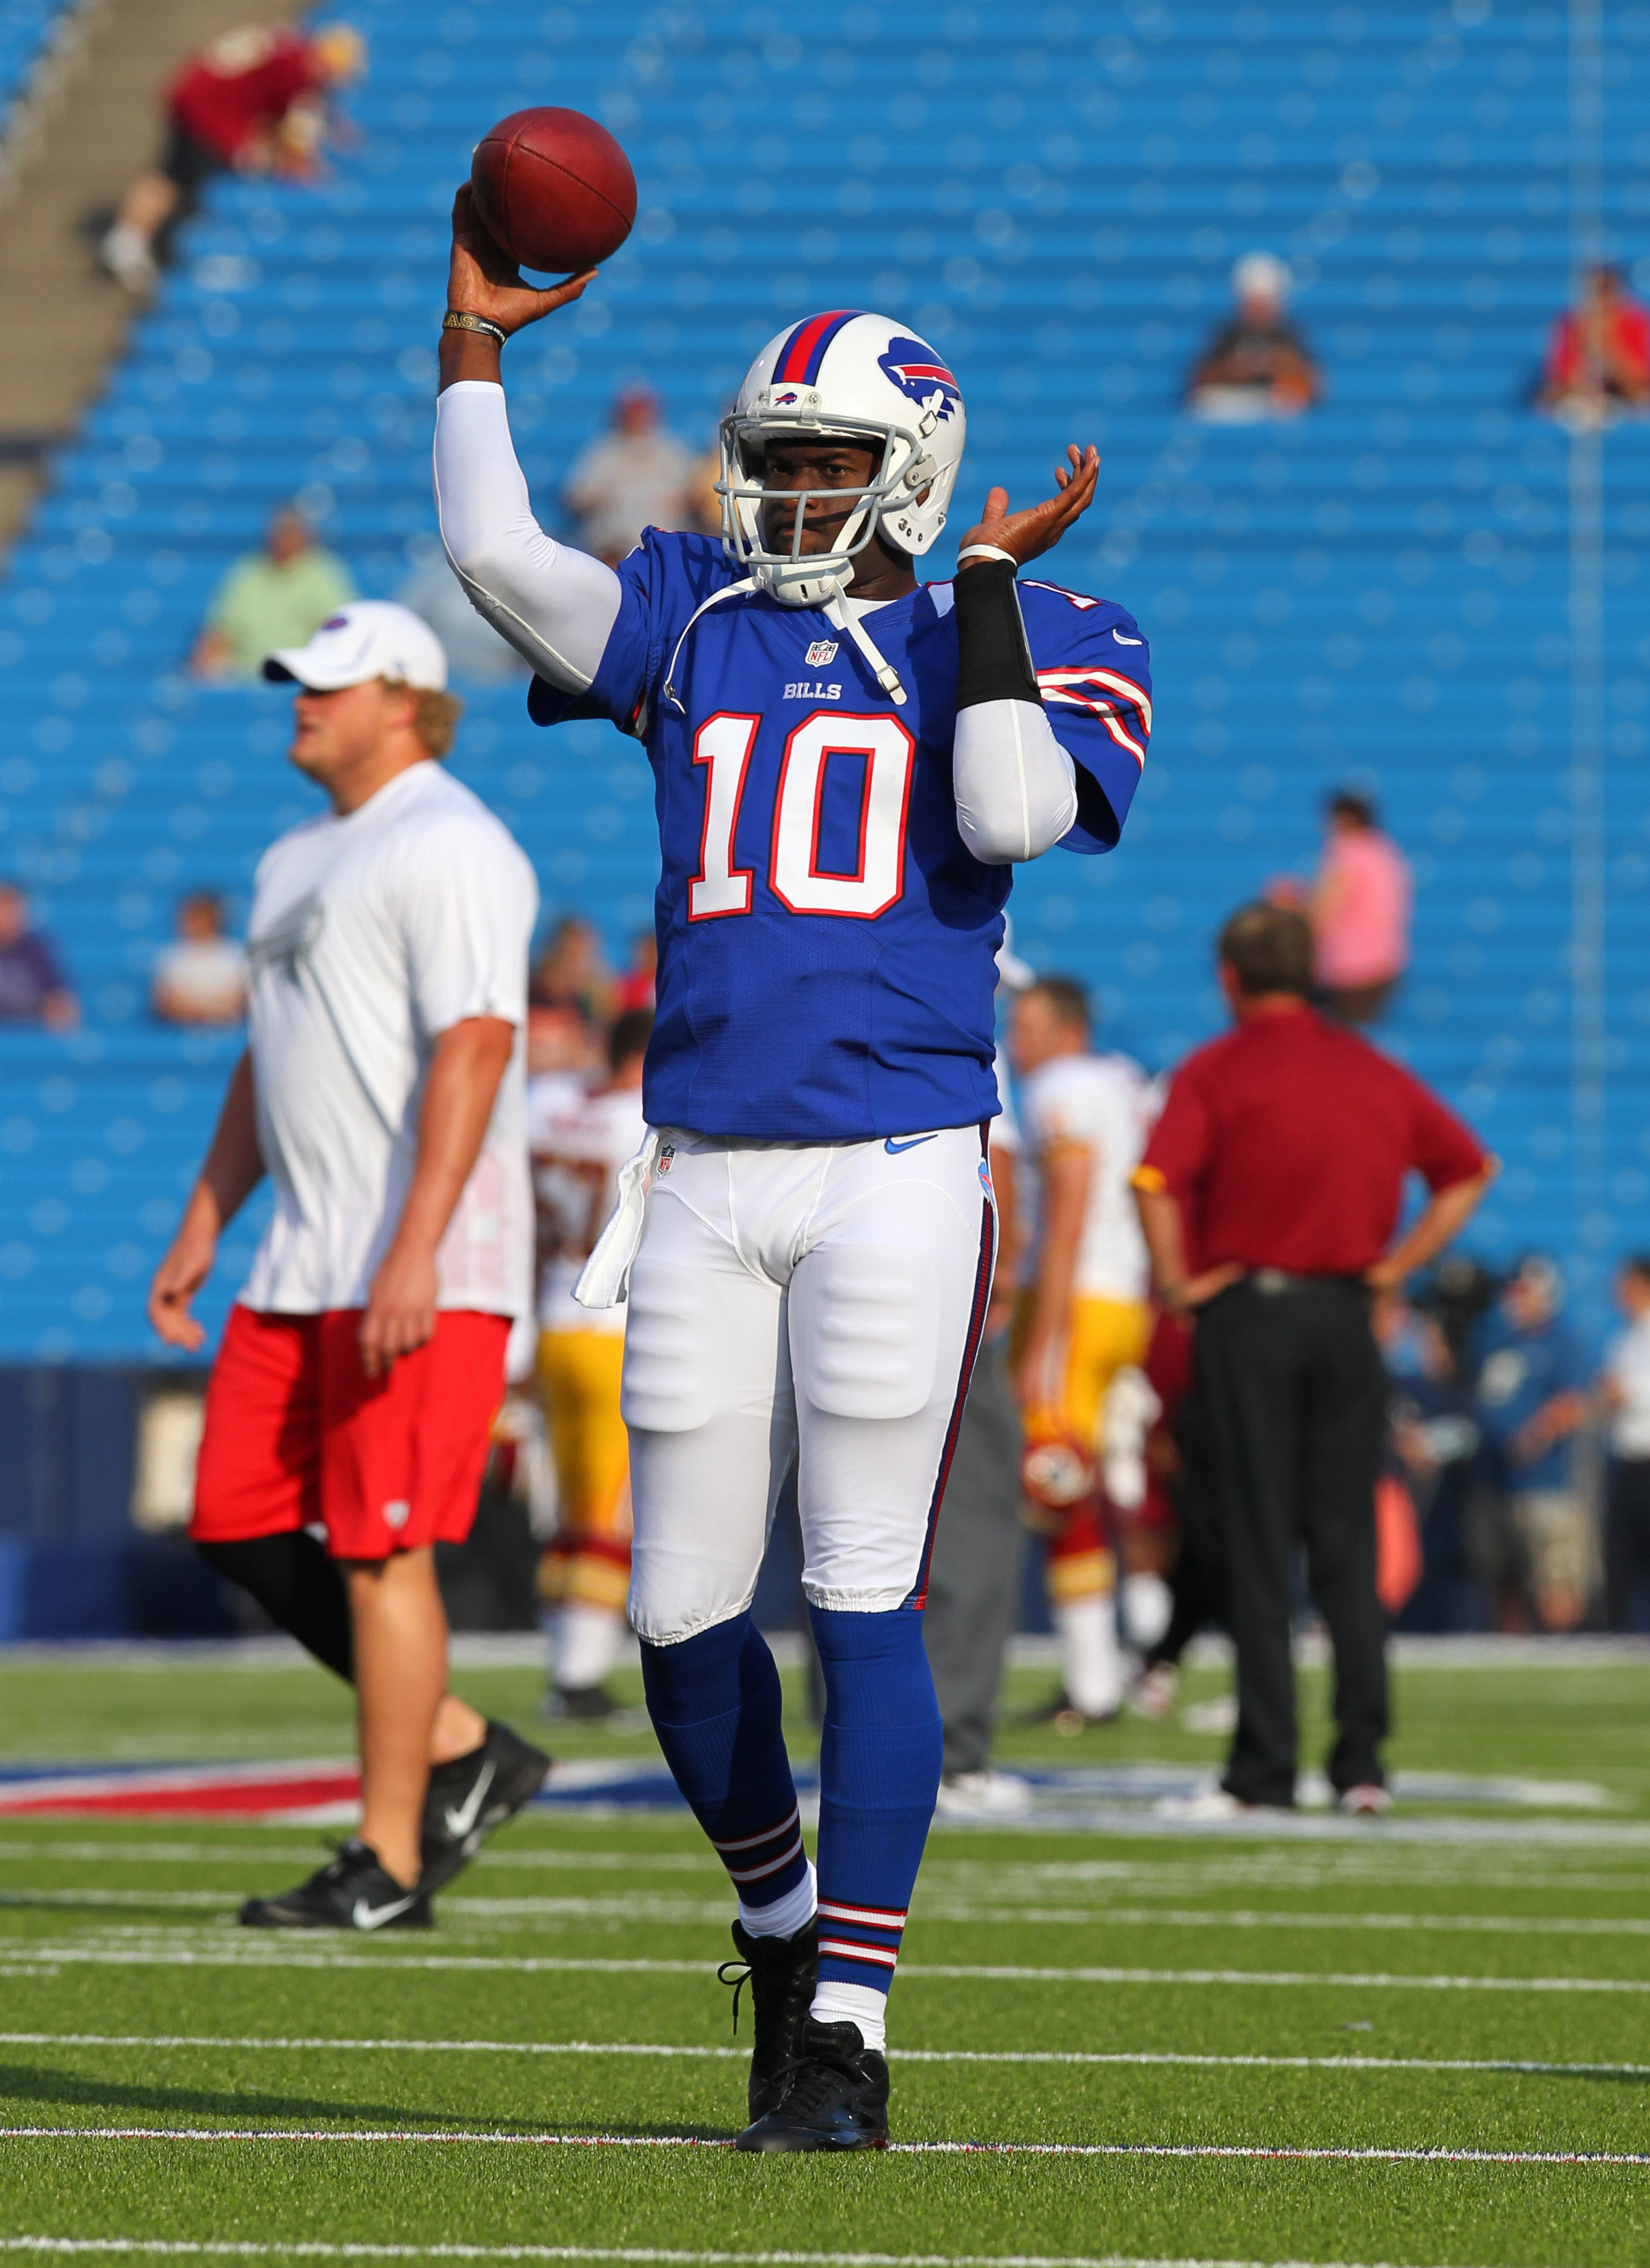 Vince Young (10) warms up before a 2012 game with the Buffalo Bills